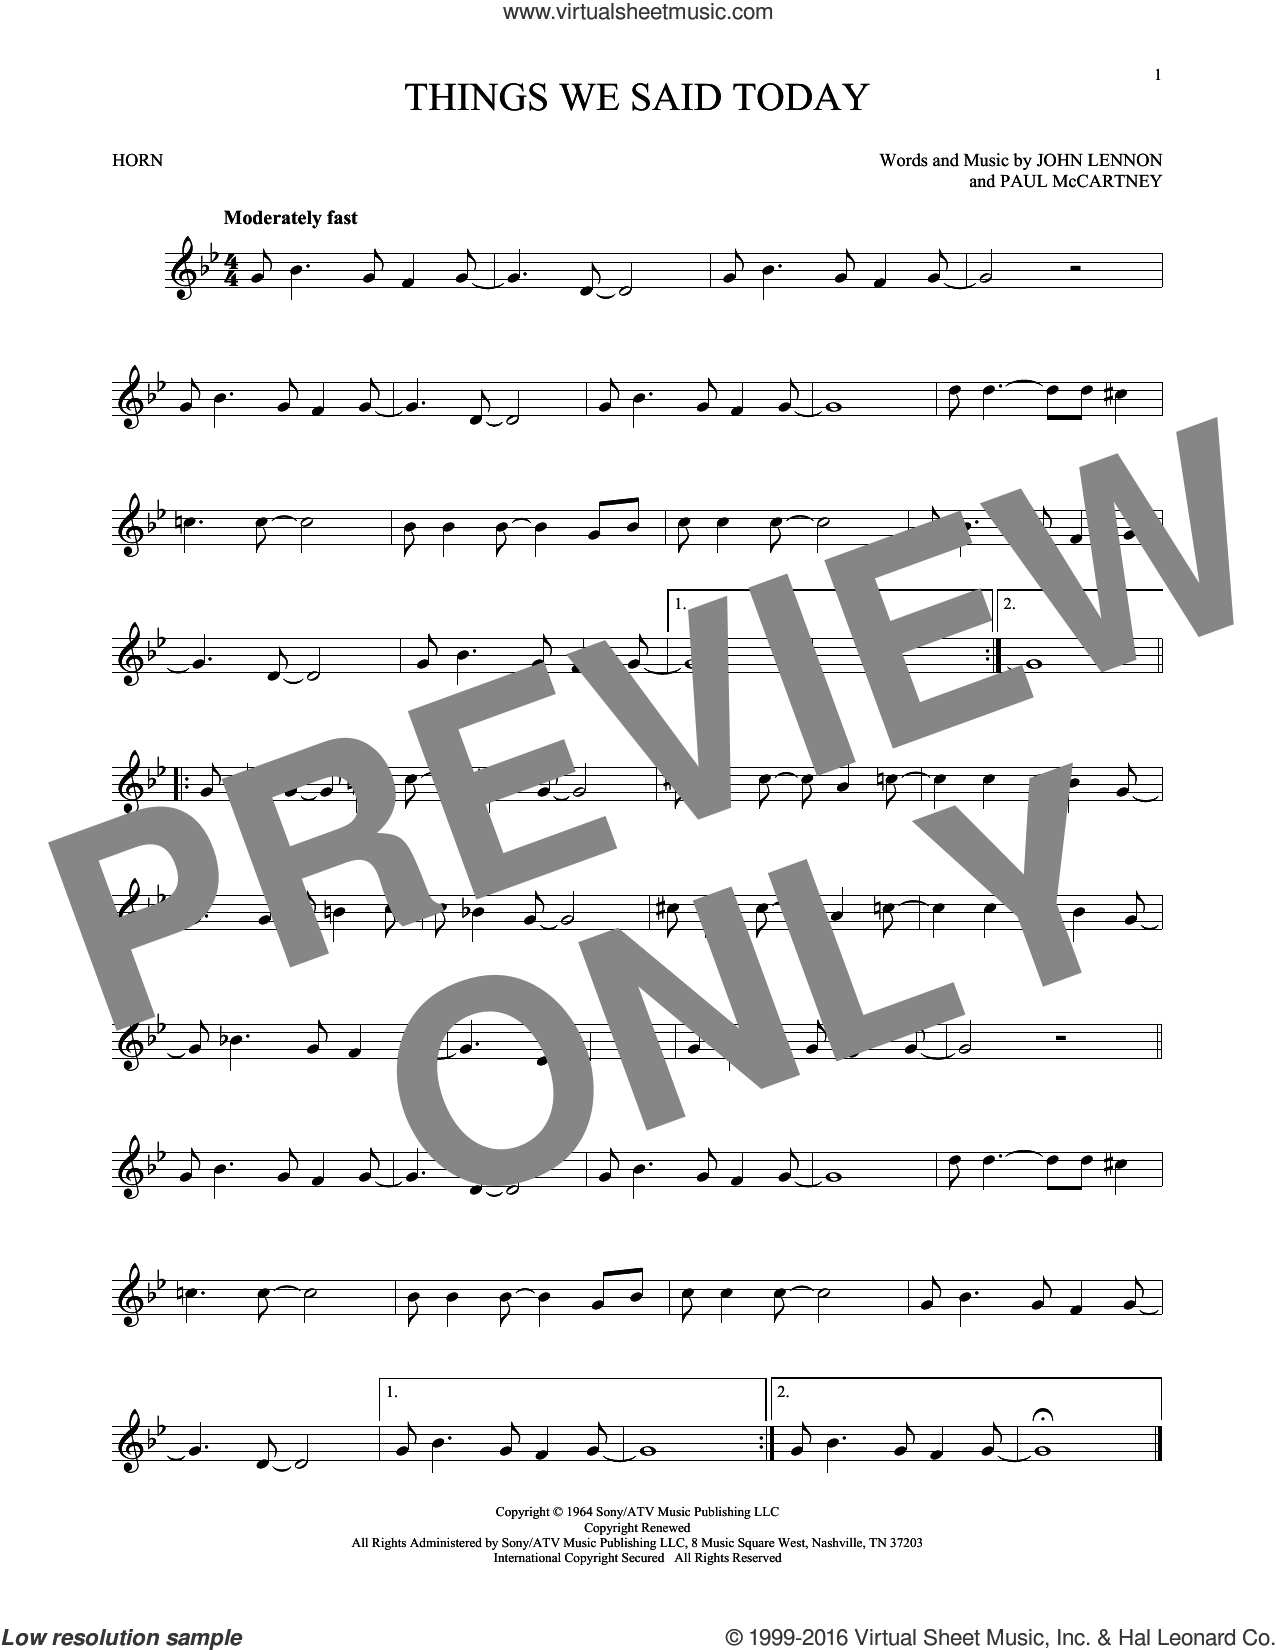 Things We Said Today sheet music for horn solo by The Beatles, John Lennon and Paul McCartney, intermediate skill level